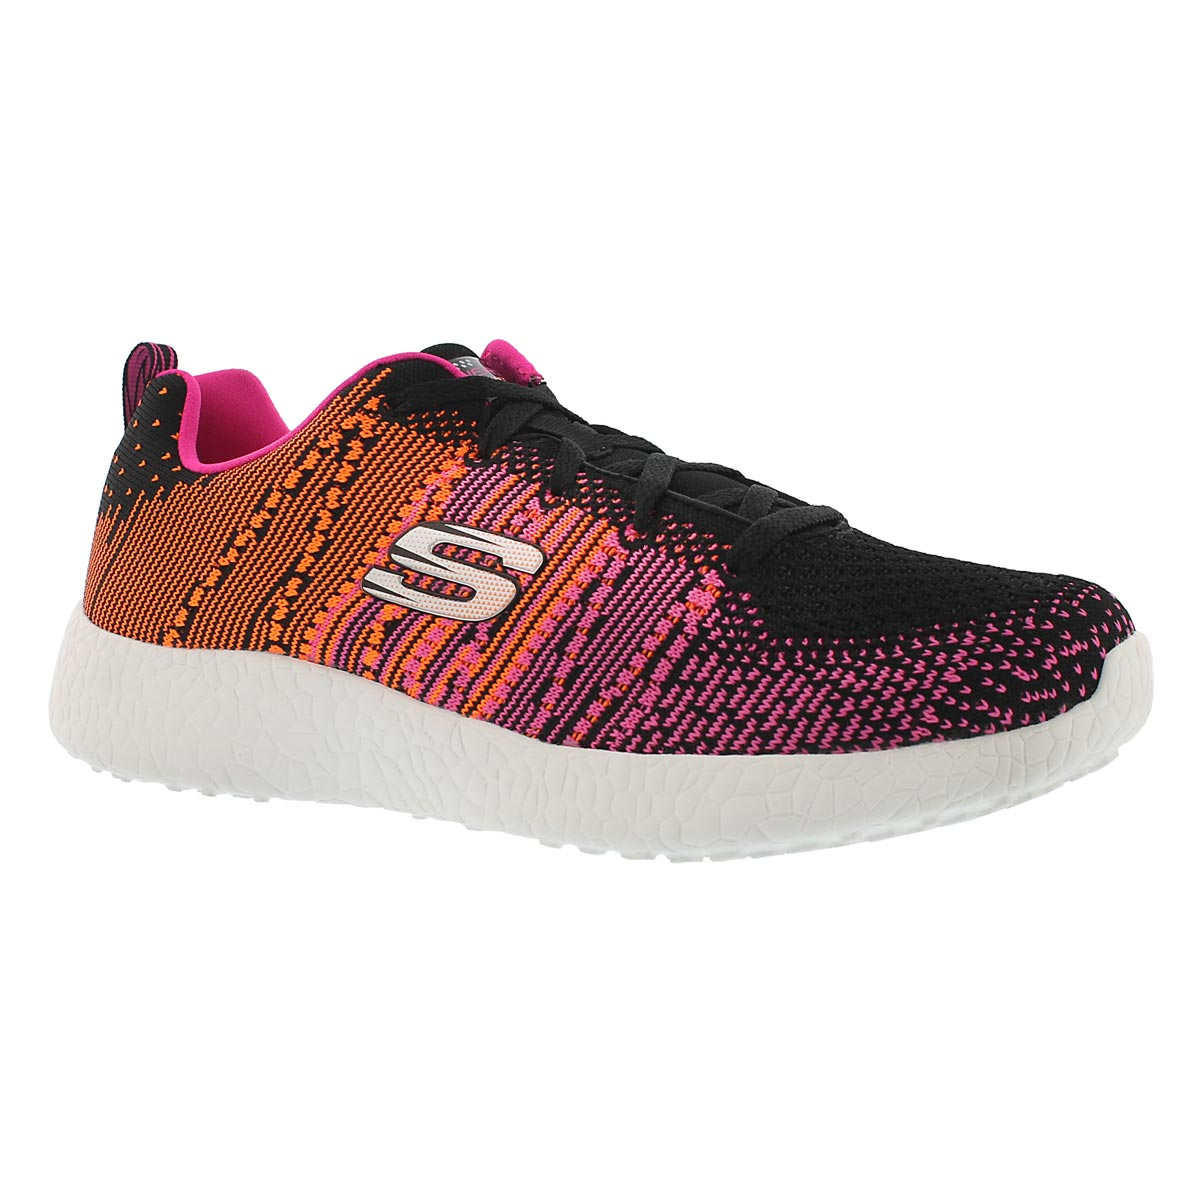 Women's ELLIPSE black/pink lace up sneakers